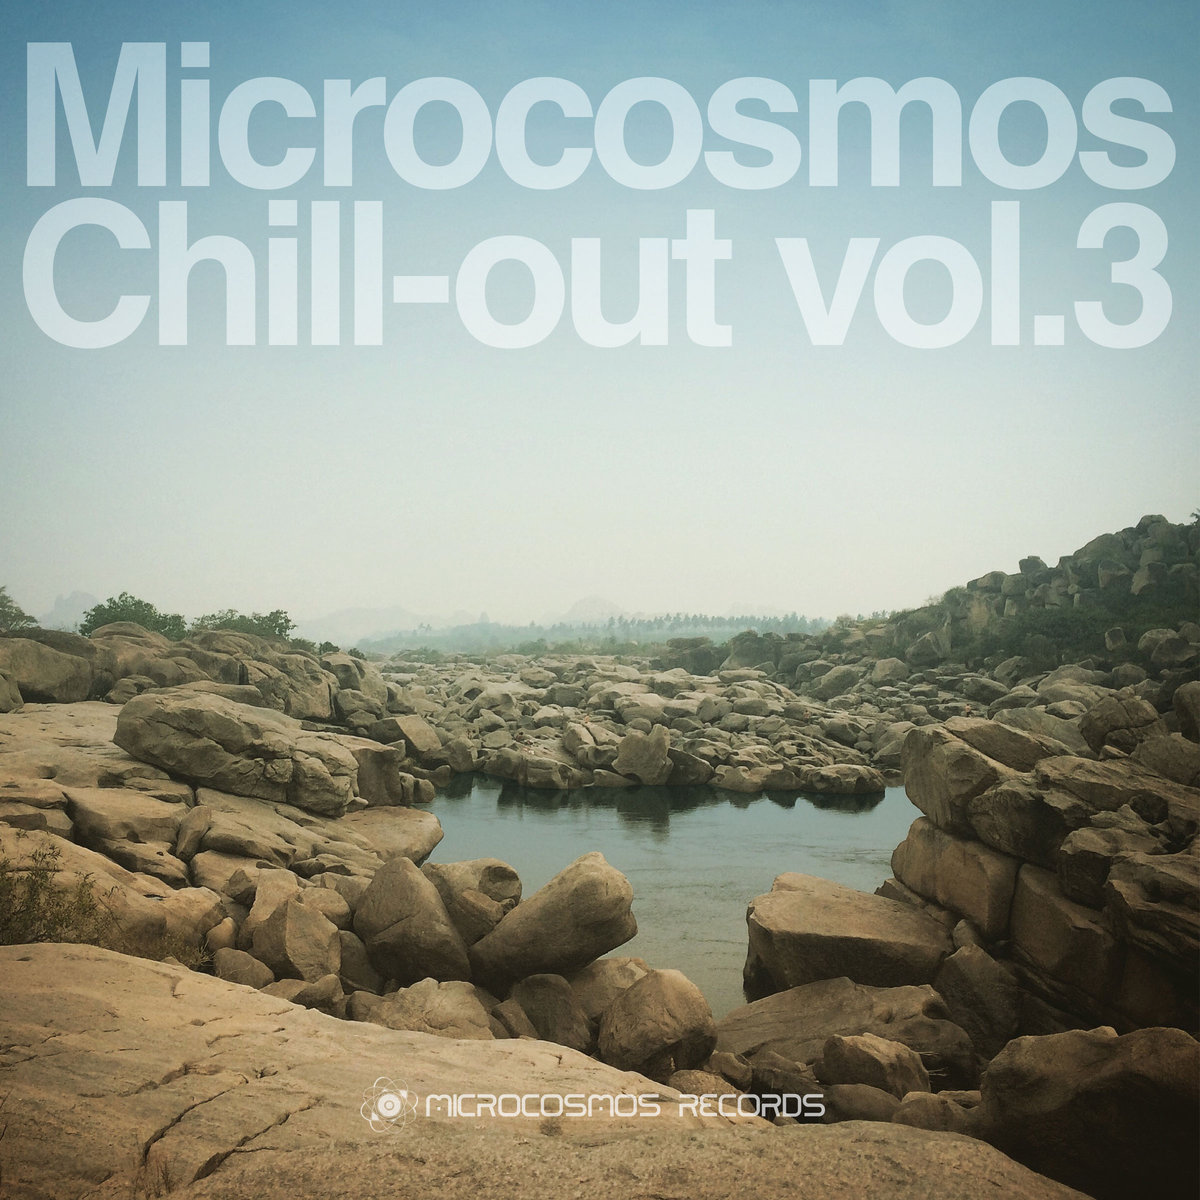 Astronaut Ape - iWorld 2.0 (Airform Remix) @ 'Microcosmos Chill-out Vol.3' album (ambient, chill-out)